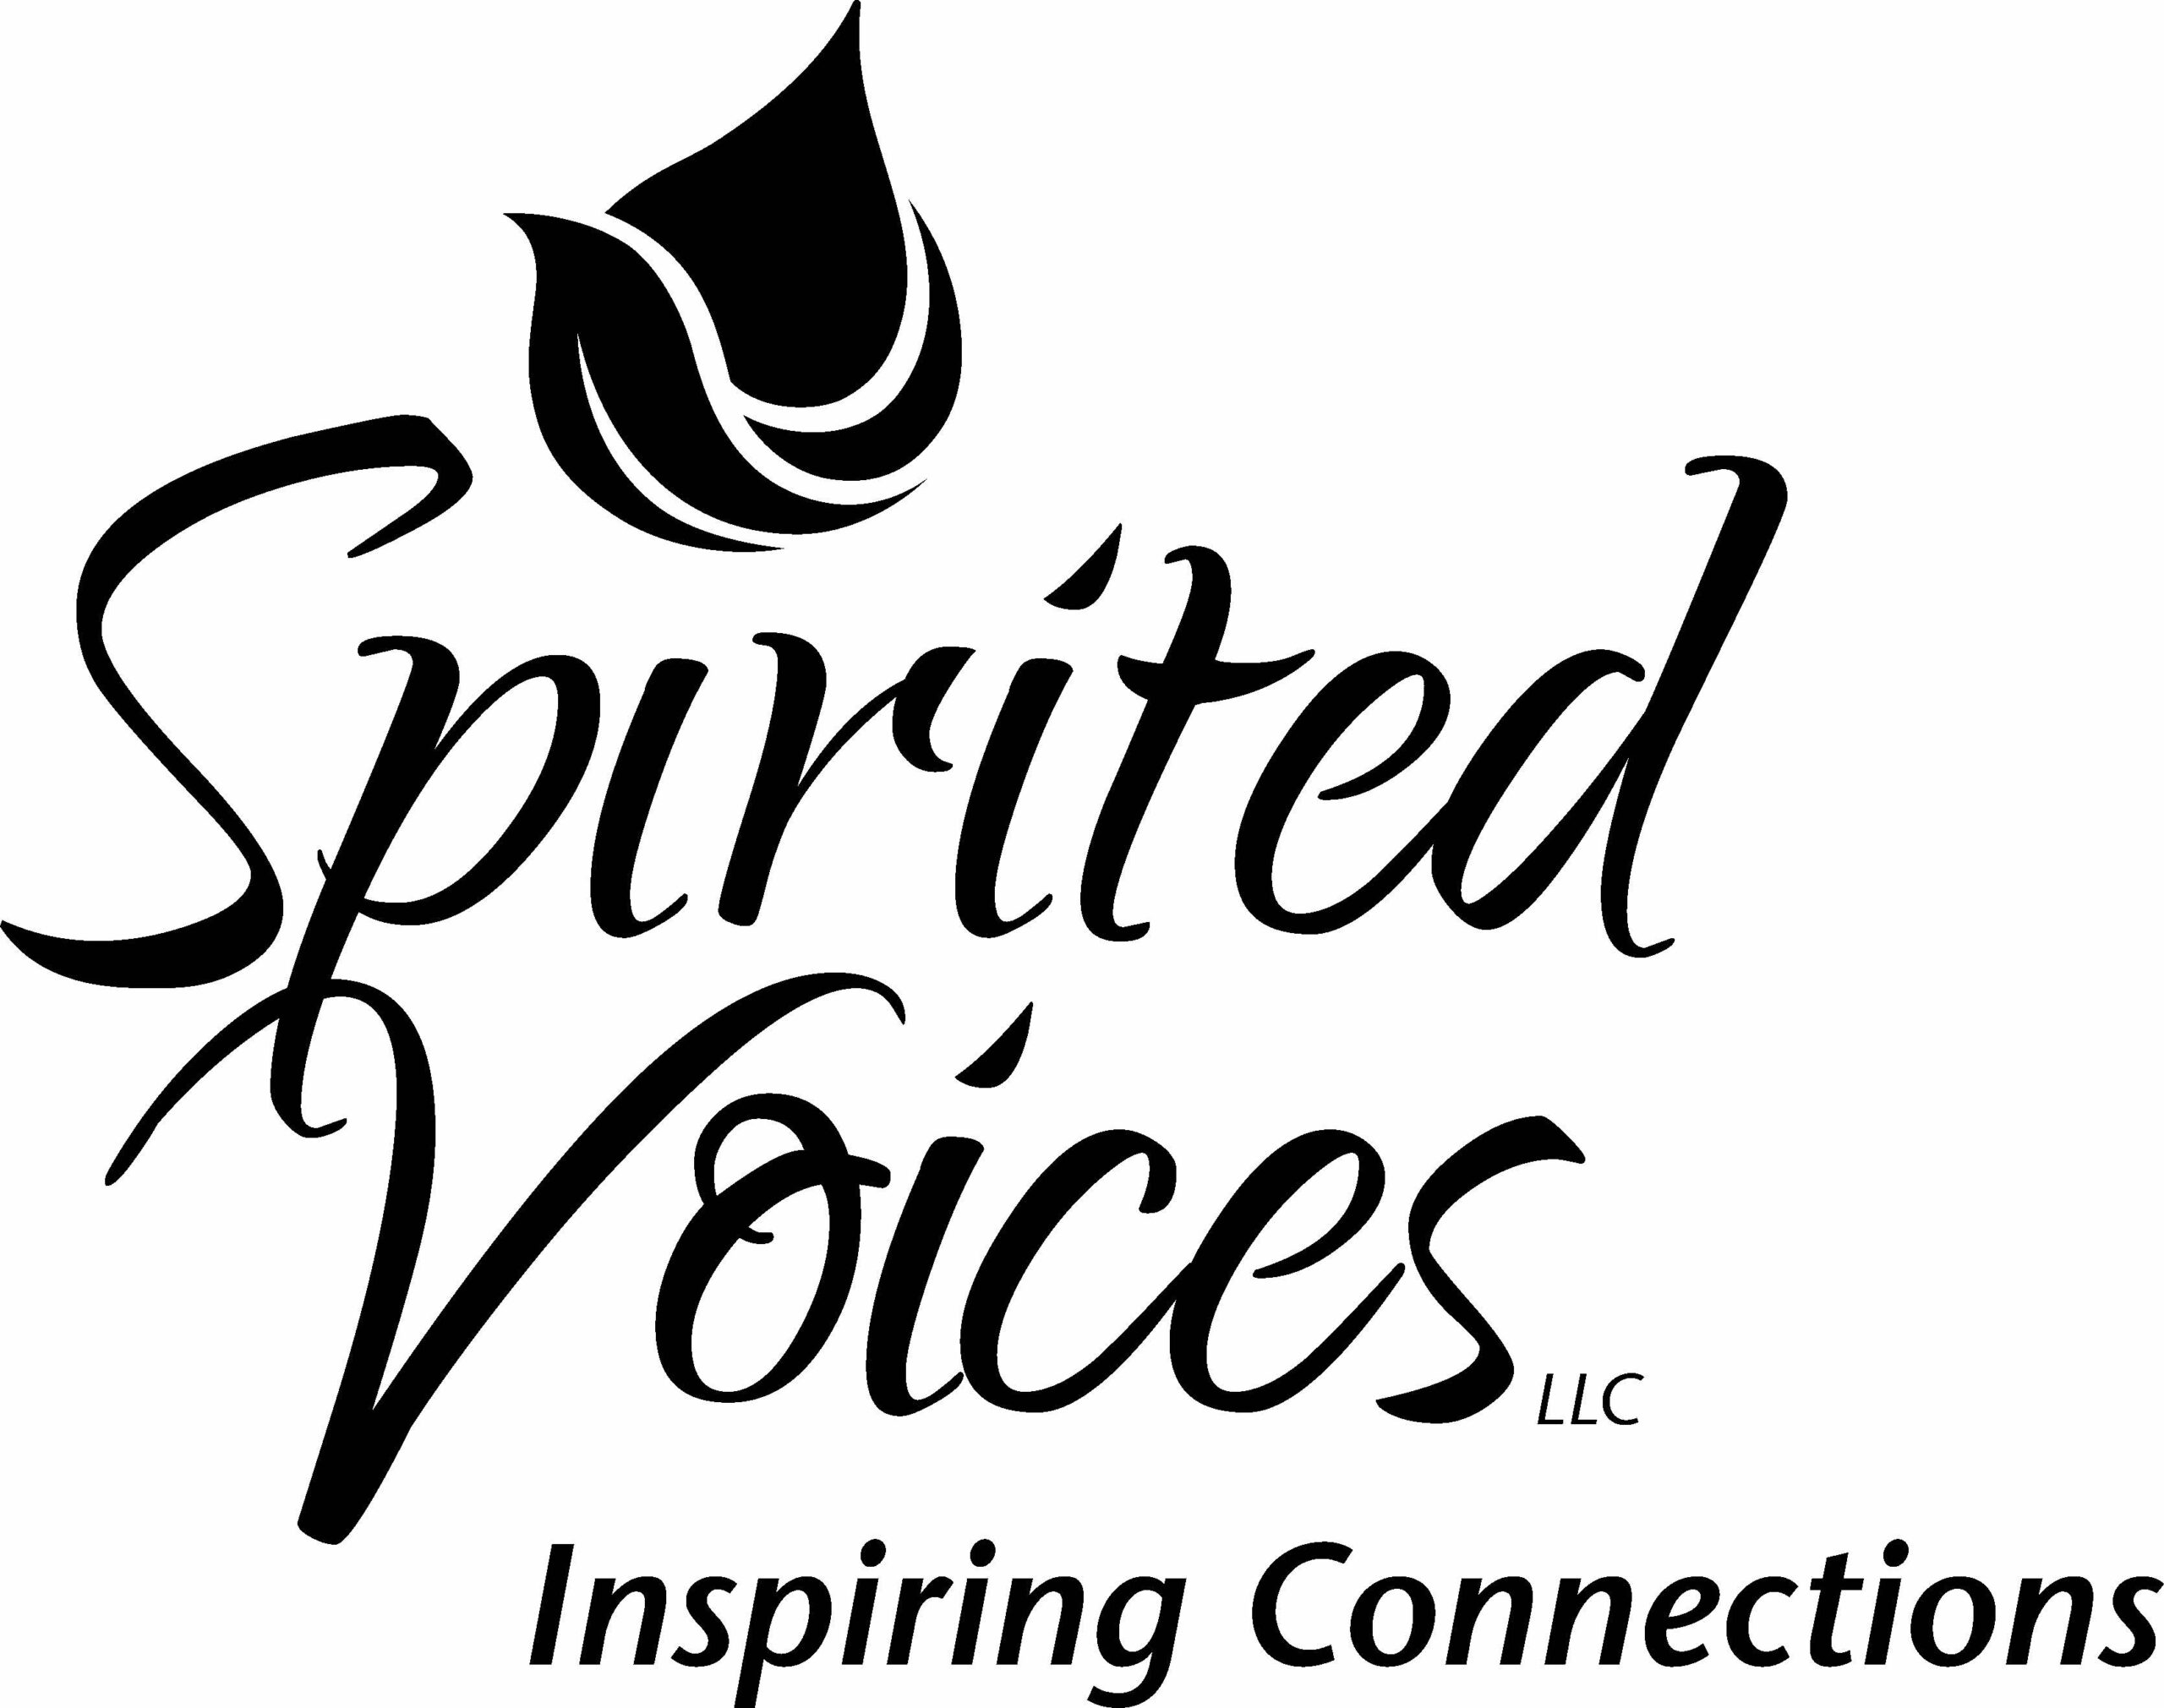 Spirited Voices